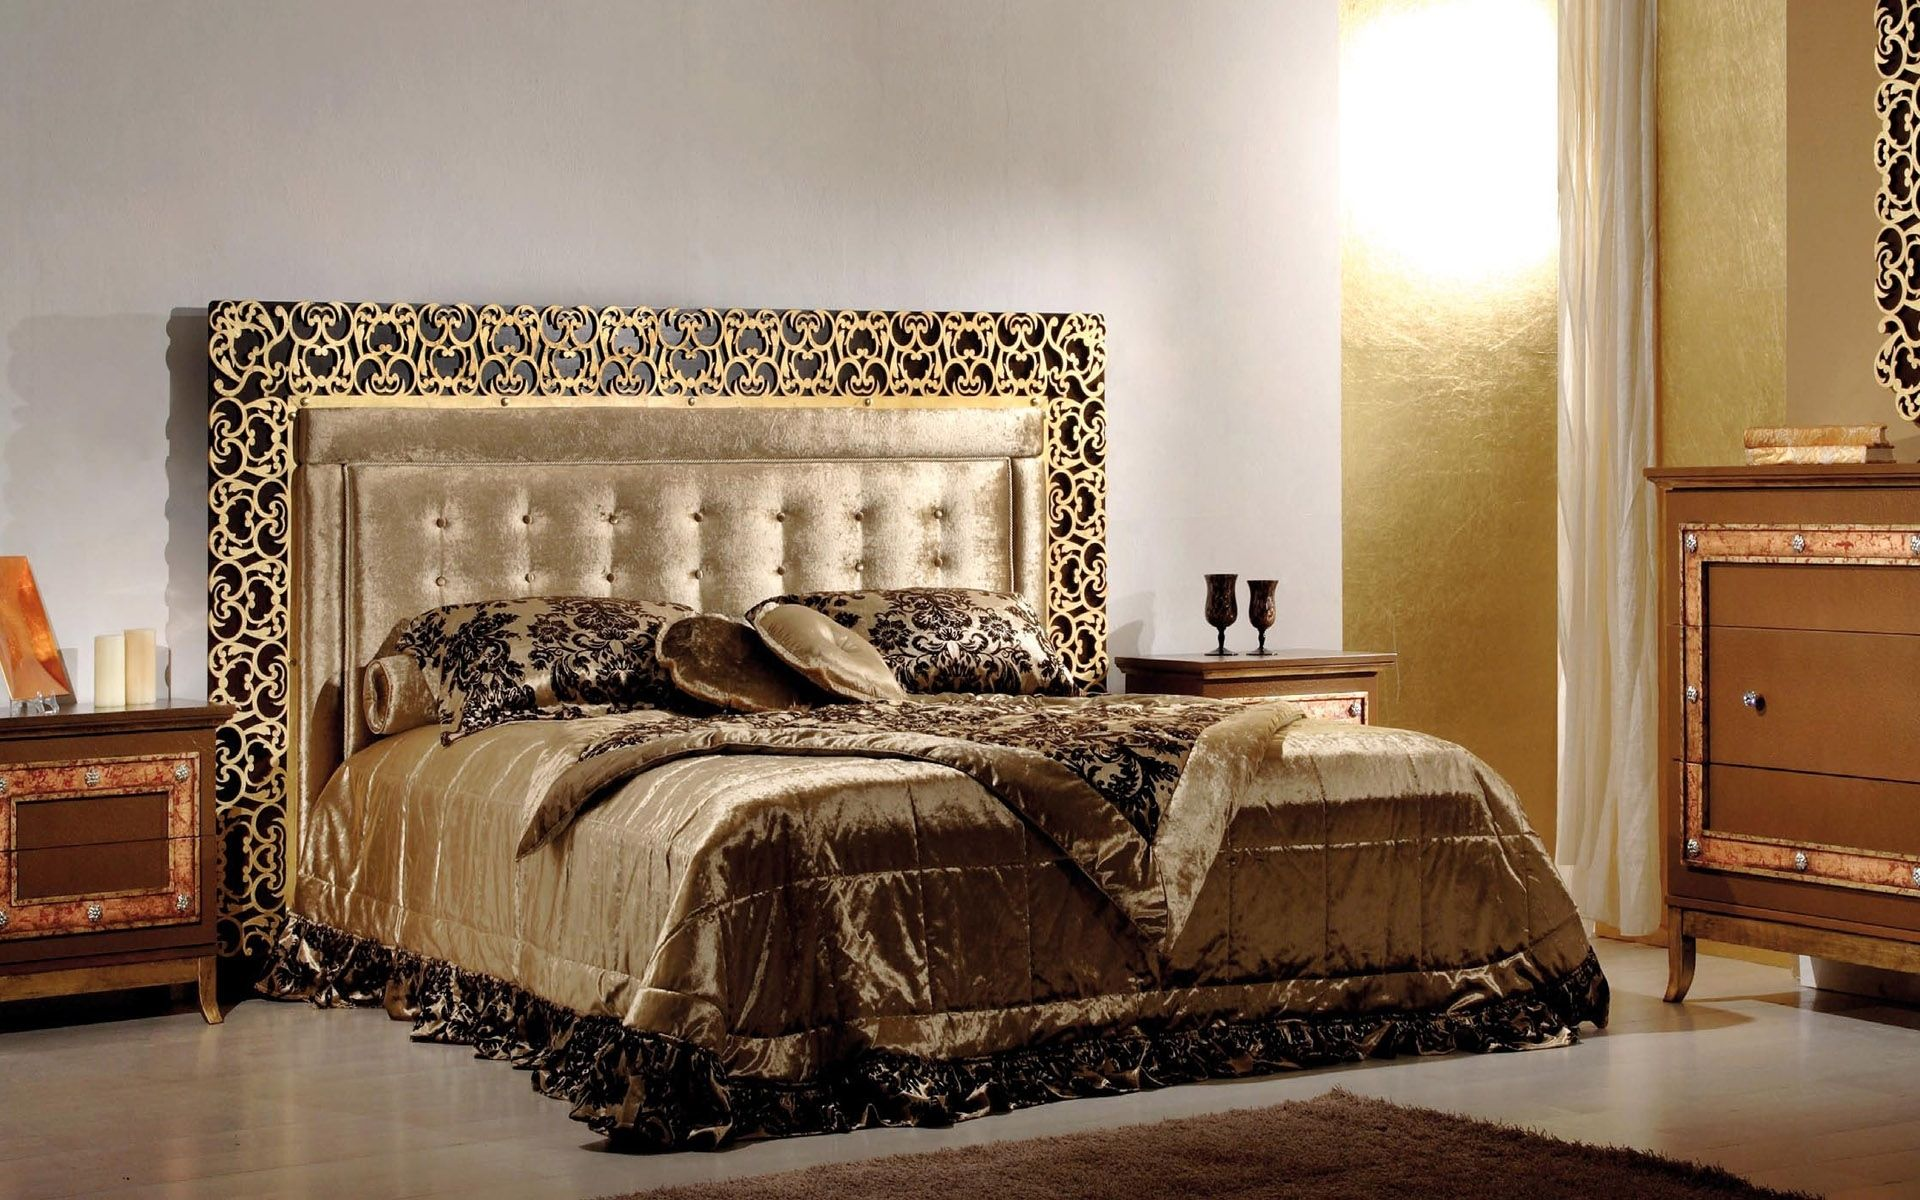 Luxury inspiration bed collection design modern gold black luxury bedding set modern bedding - Look contemporary luxury bedding ...